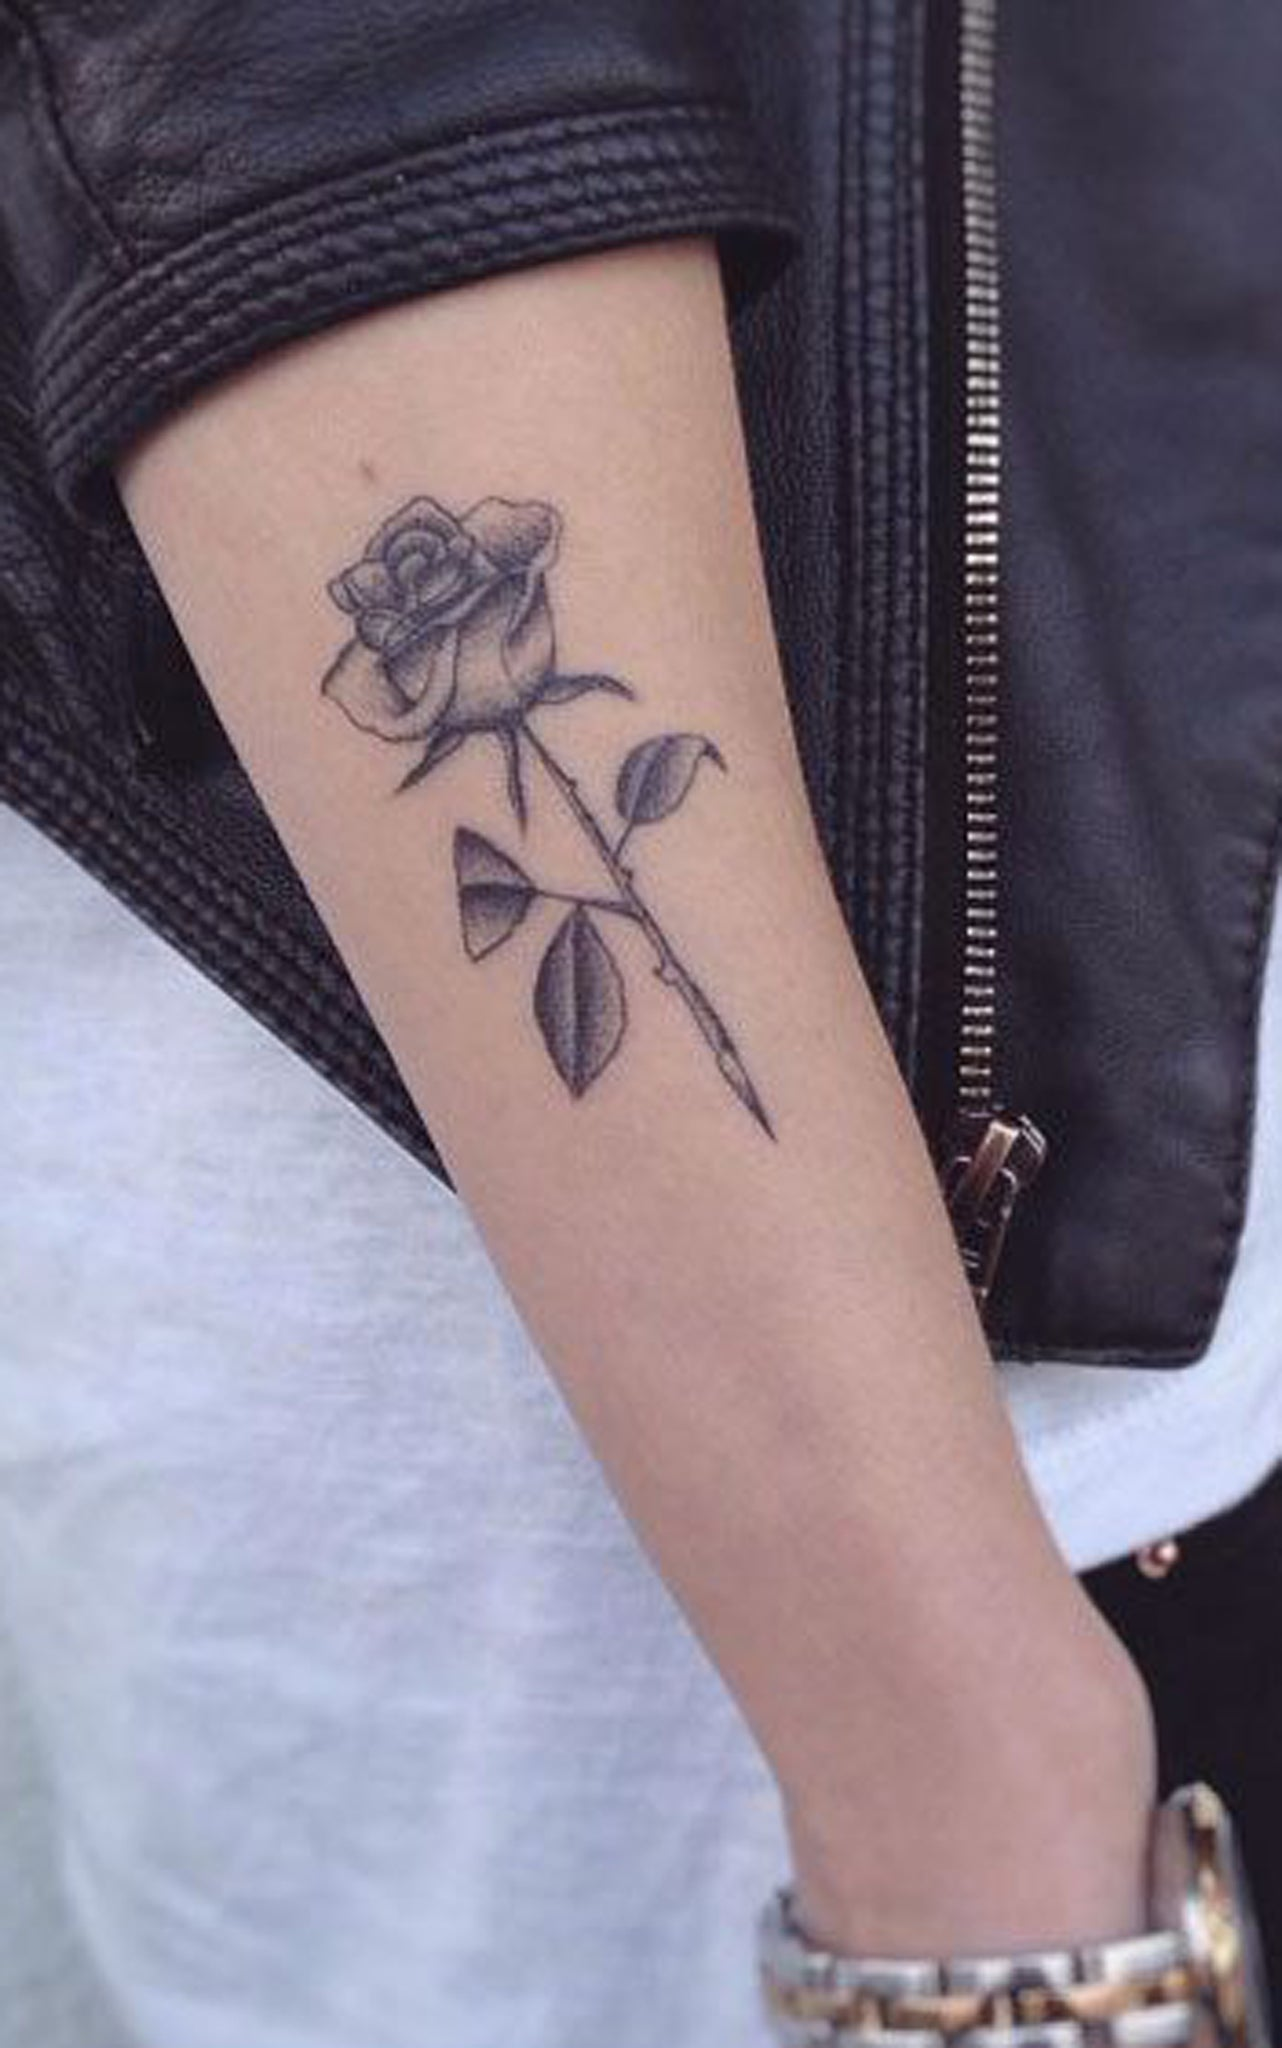 Black & White Realistic Rose Outer Forearm Tattoo Ideas for Women -   rose ideas de tatuaje de antebrazo exterior para mujeres chicas - www.MyBodiArt.com